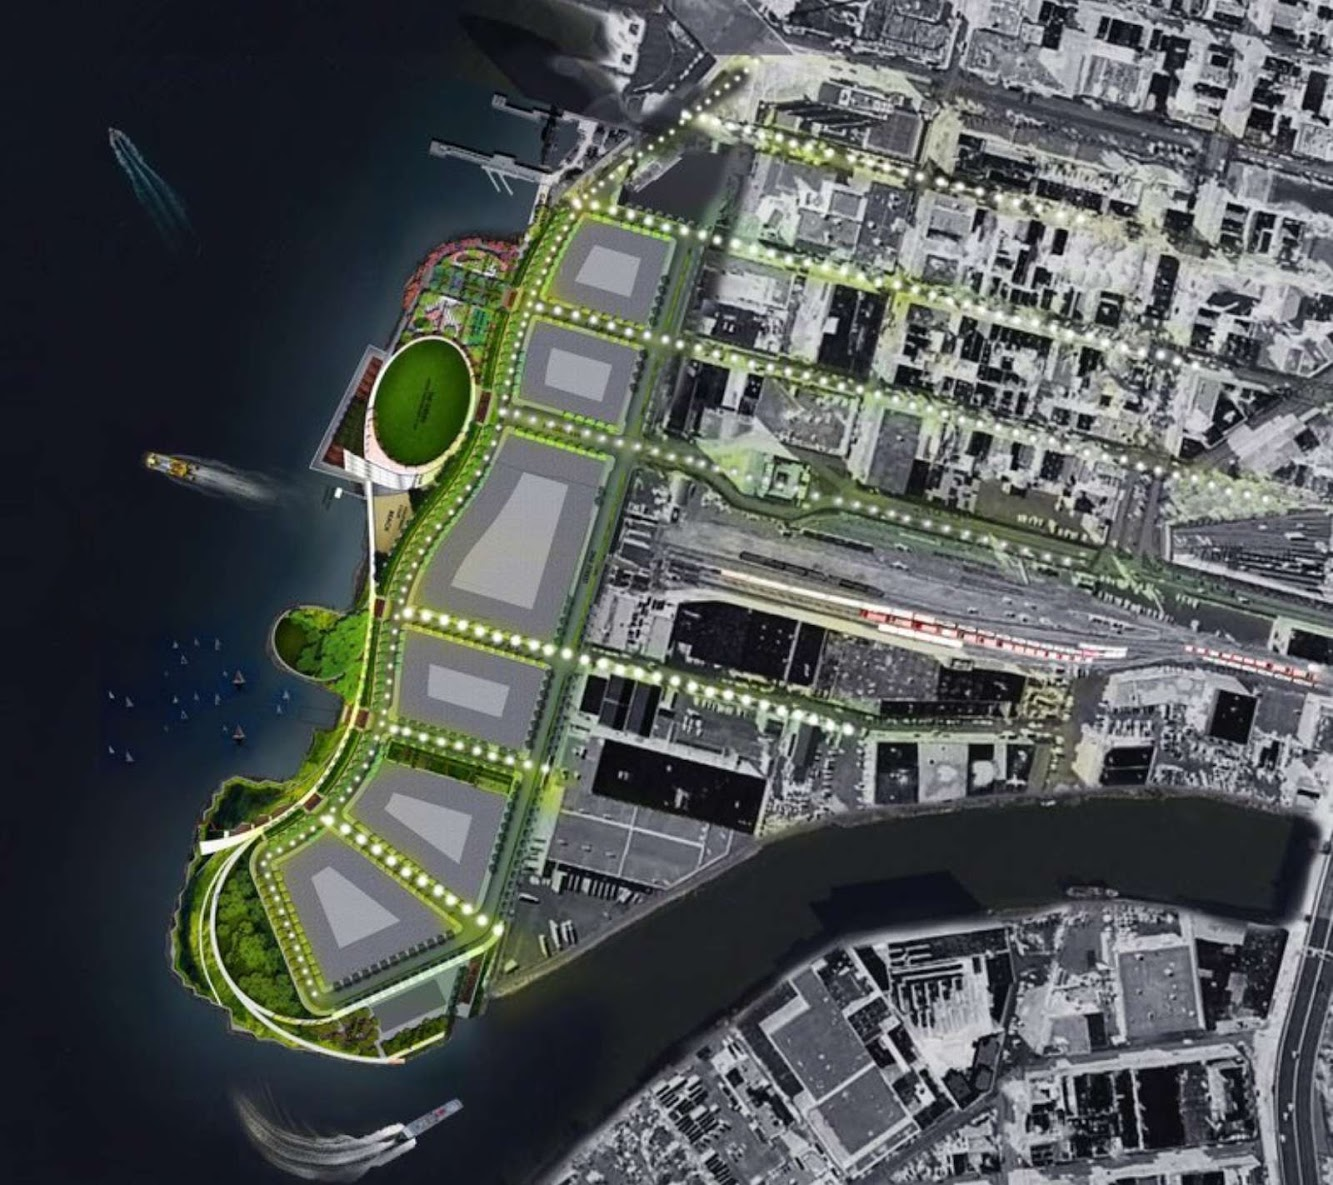 17-Hunters-Point-South-Waterfront-Park-by-Thomas-Balsley-Associates-and-Weiss/Manfredi